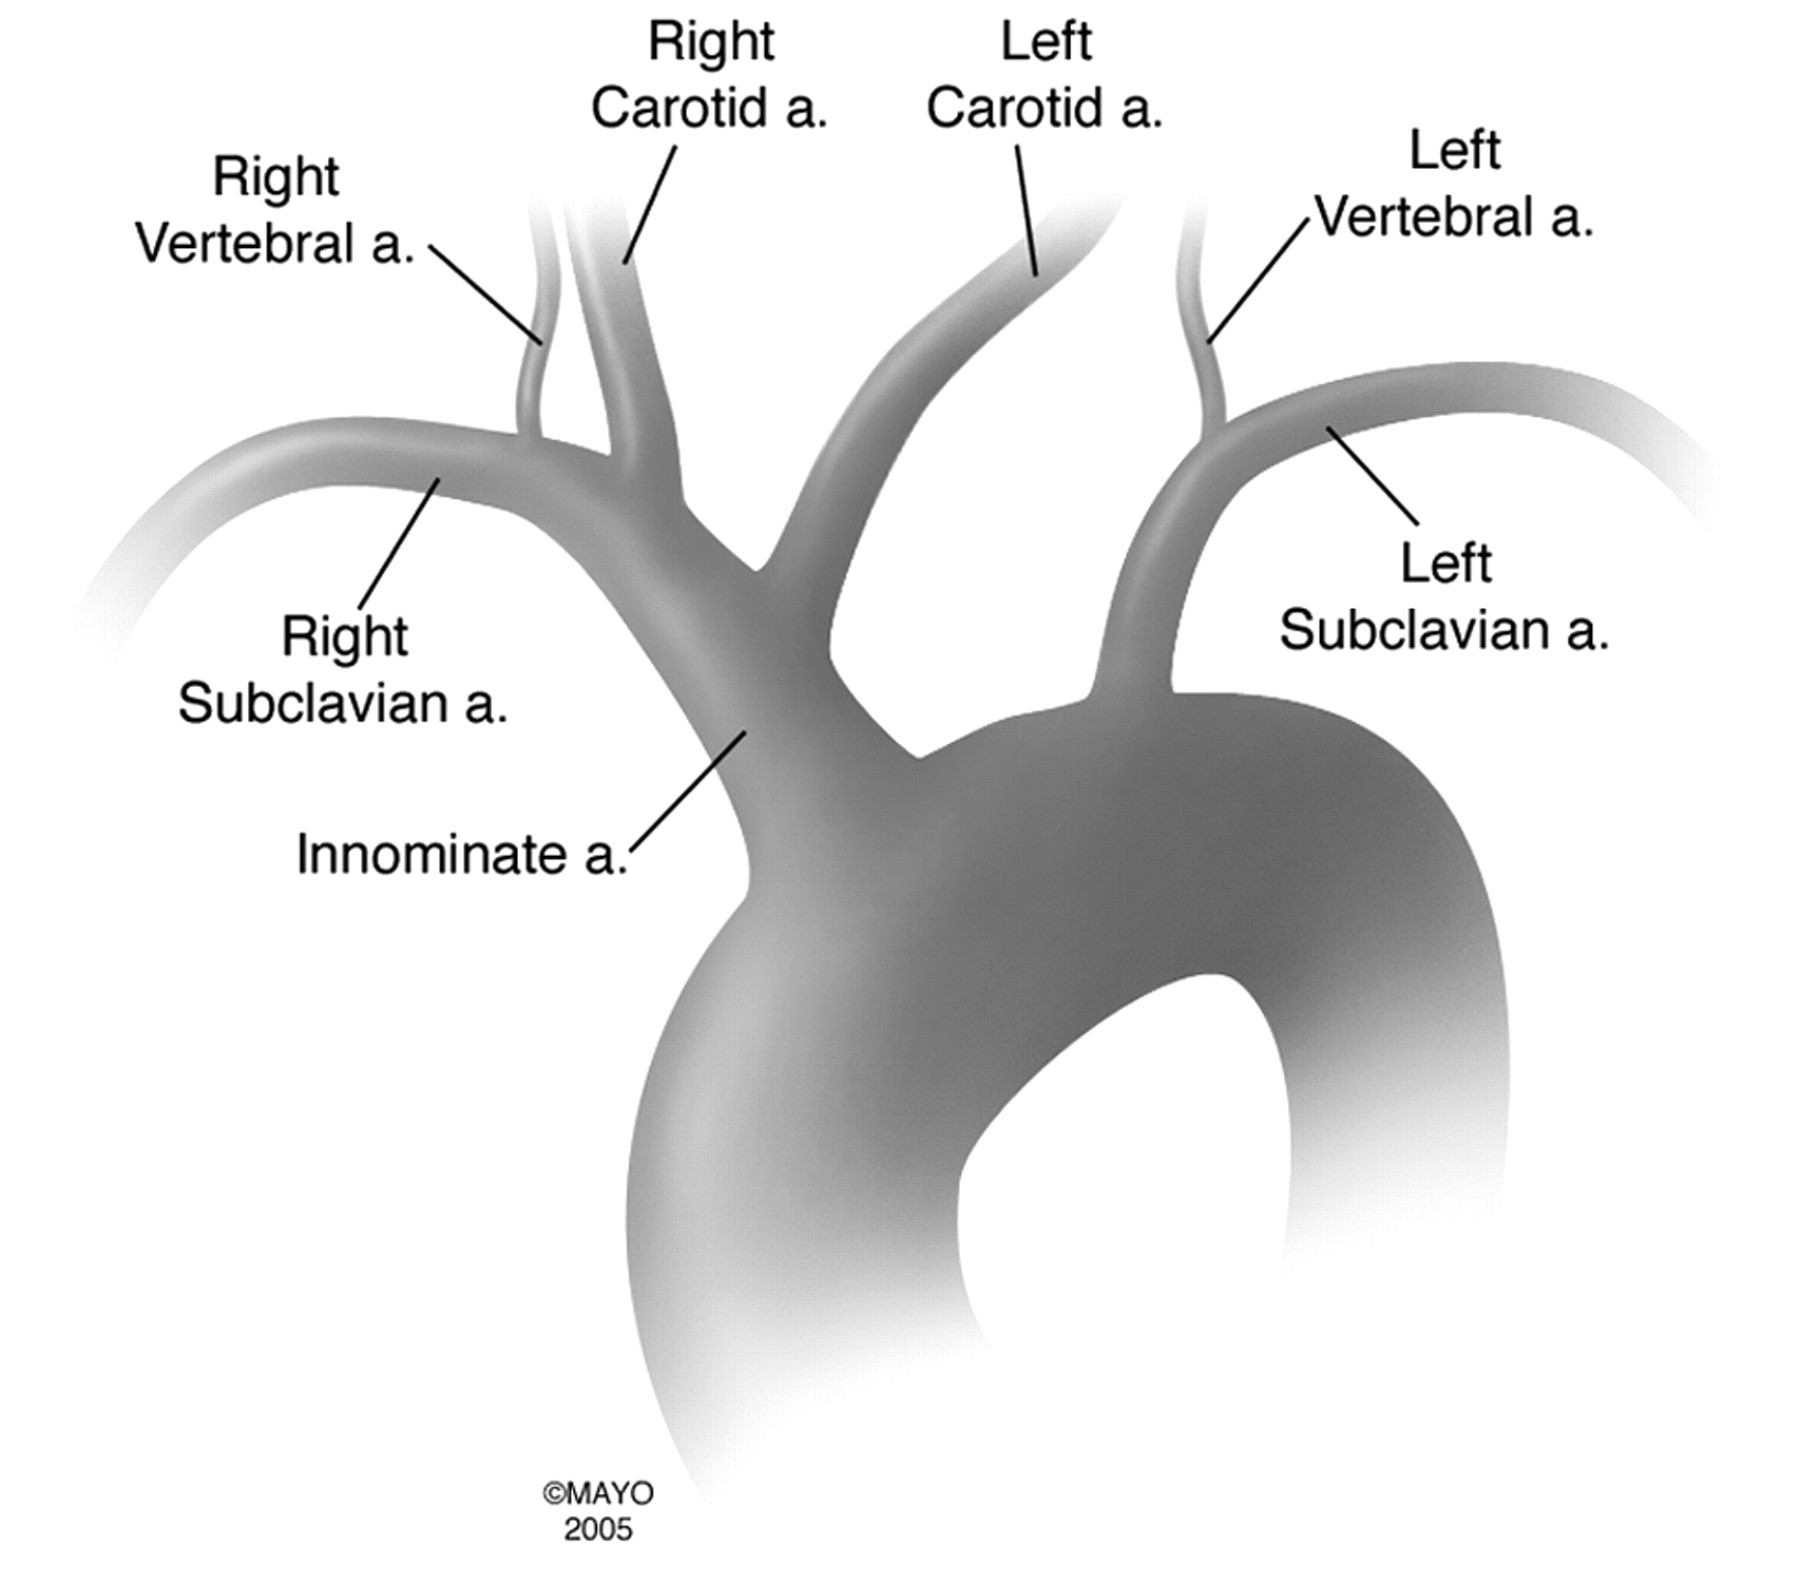 bovine aortic arch variant in humans: clarification of a common, Human Body